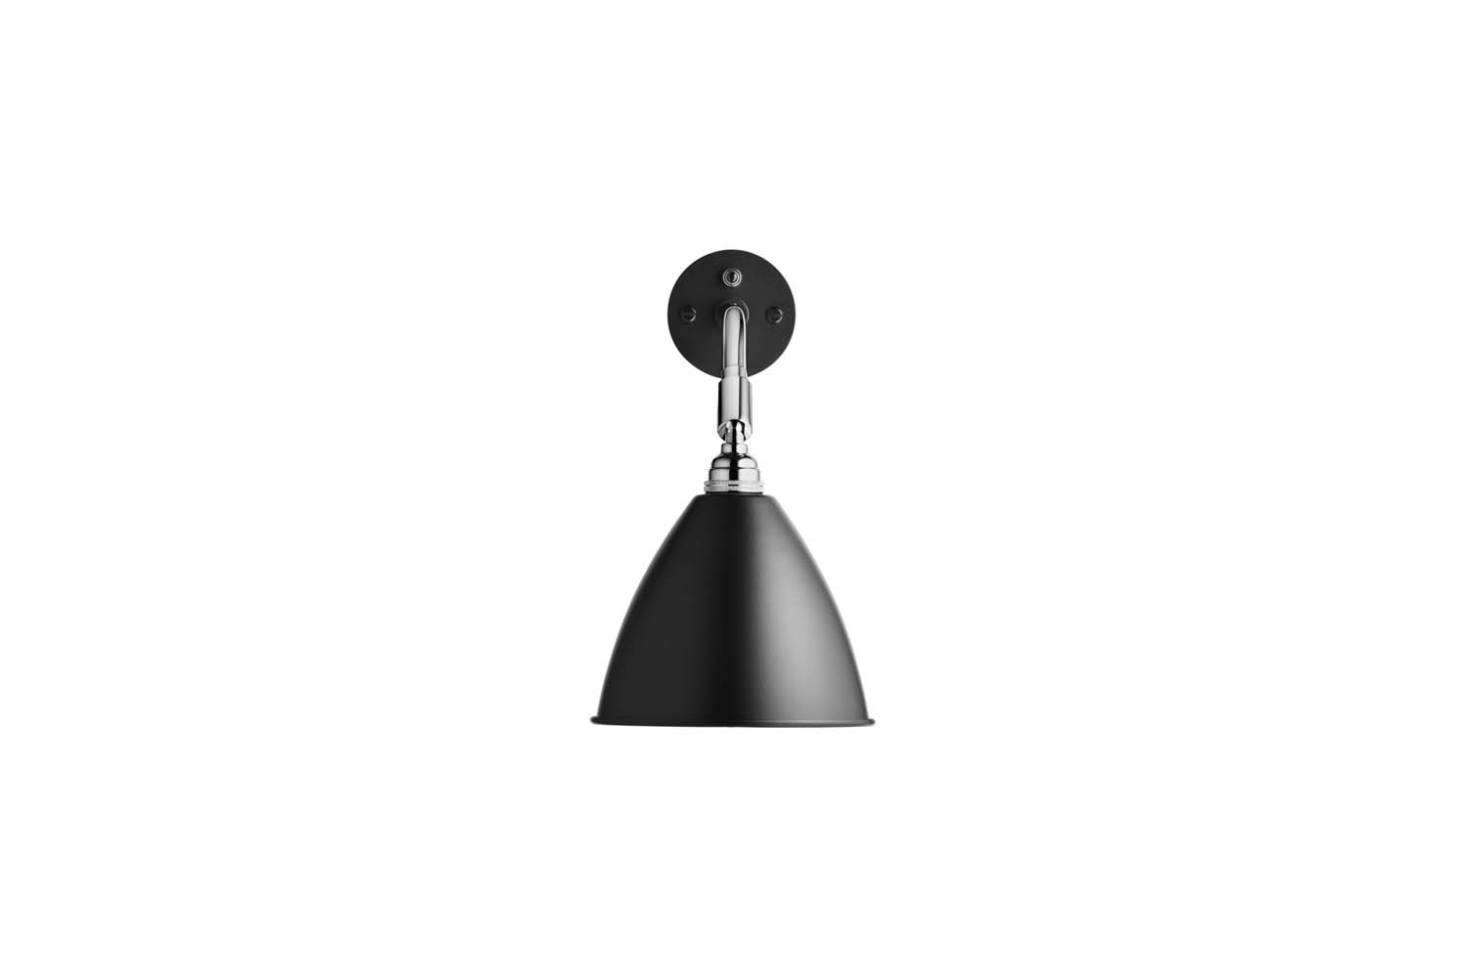 The Bestlite BL7 Wall Sconce comes in black or white with a Chrome (shown) or Brass finish; $4-$495 at Horne.